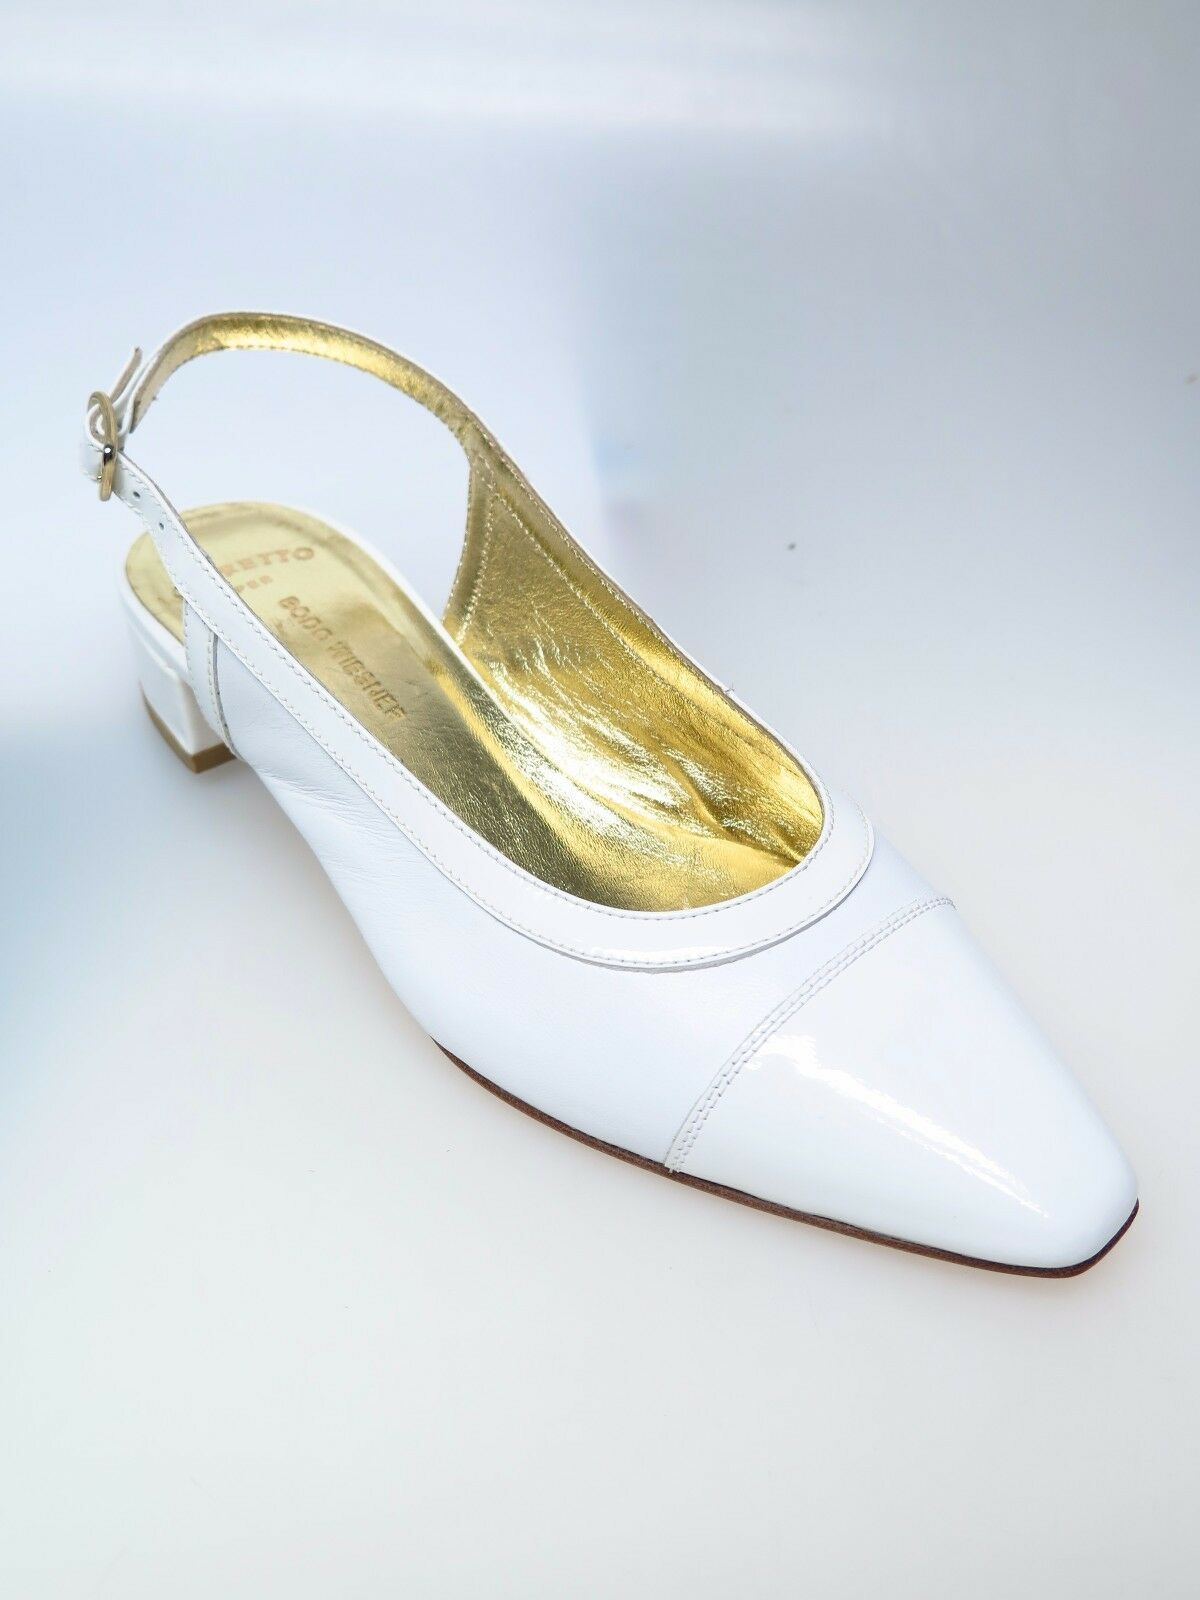 MARETTO ITALY CHAUSSURES Nappa FEMMES CREATGina Nappa CHAUSSURES vernice Bianco taille 36,5 NEUF a8b3cd